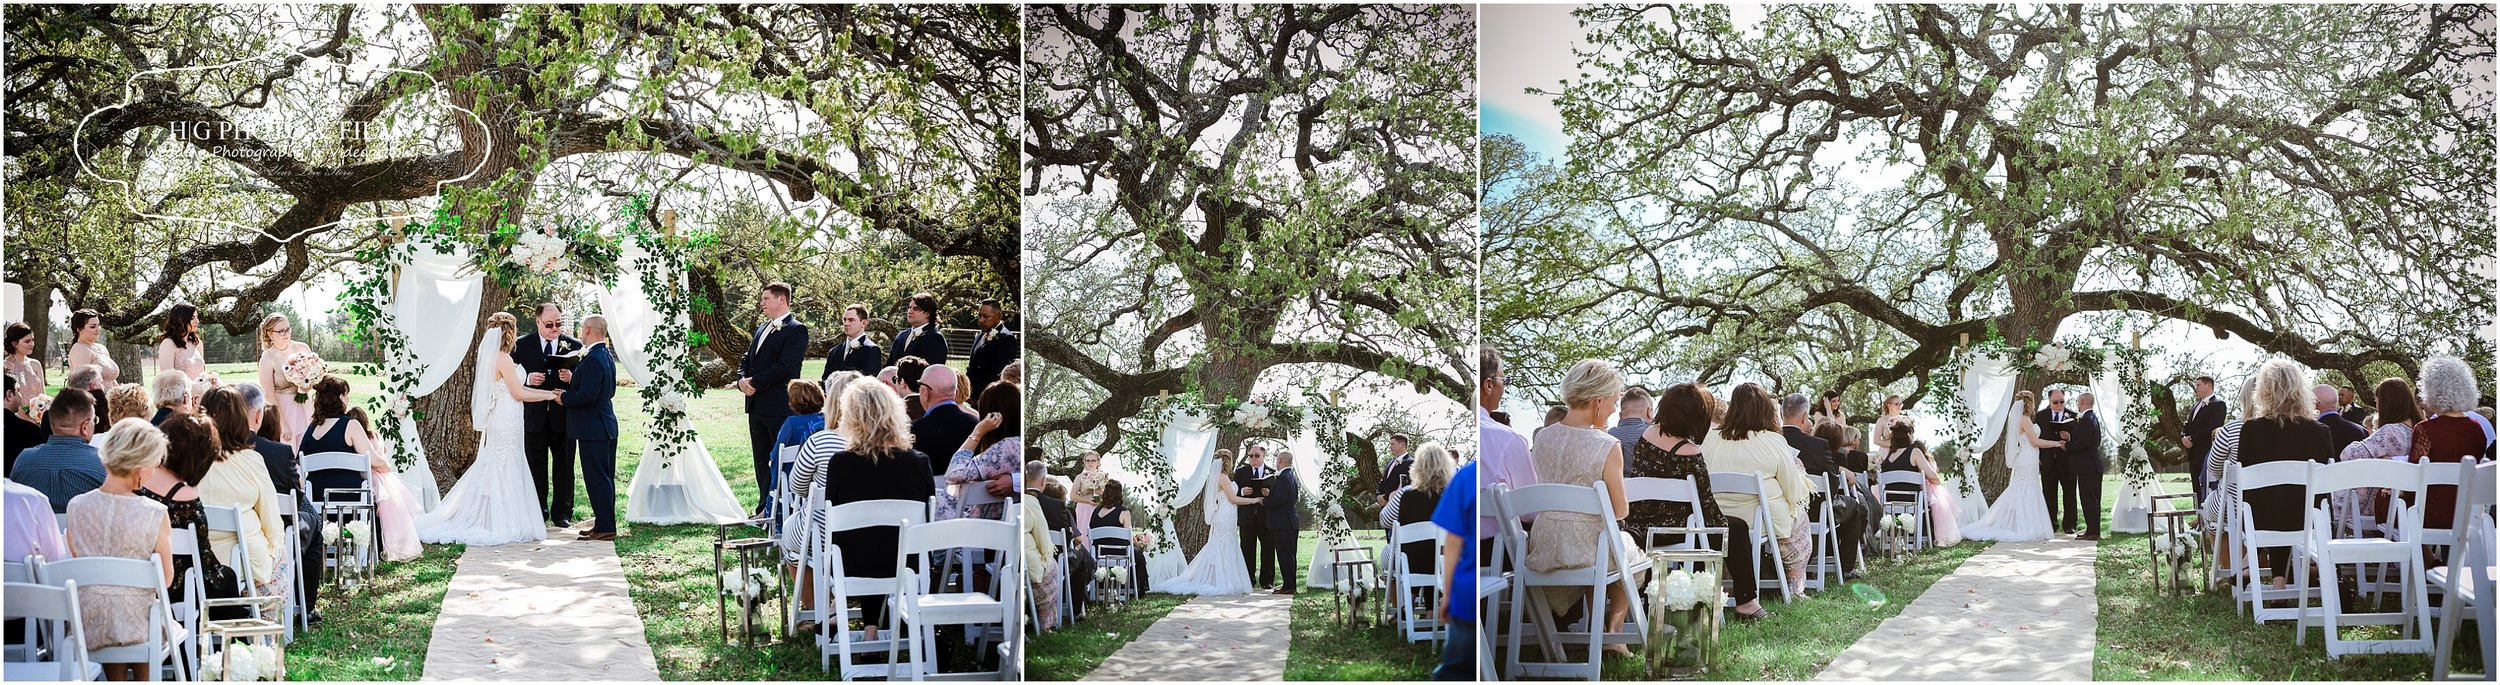 A perfect tree to get married under. Isnt it just gorgeous